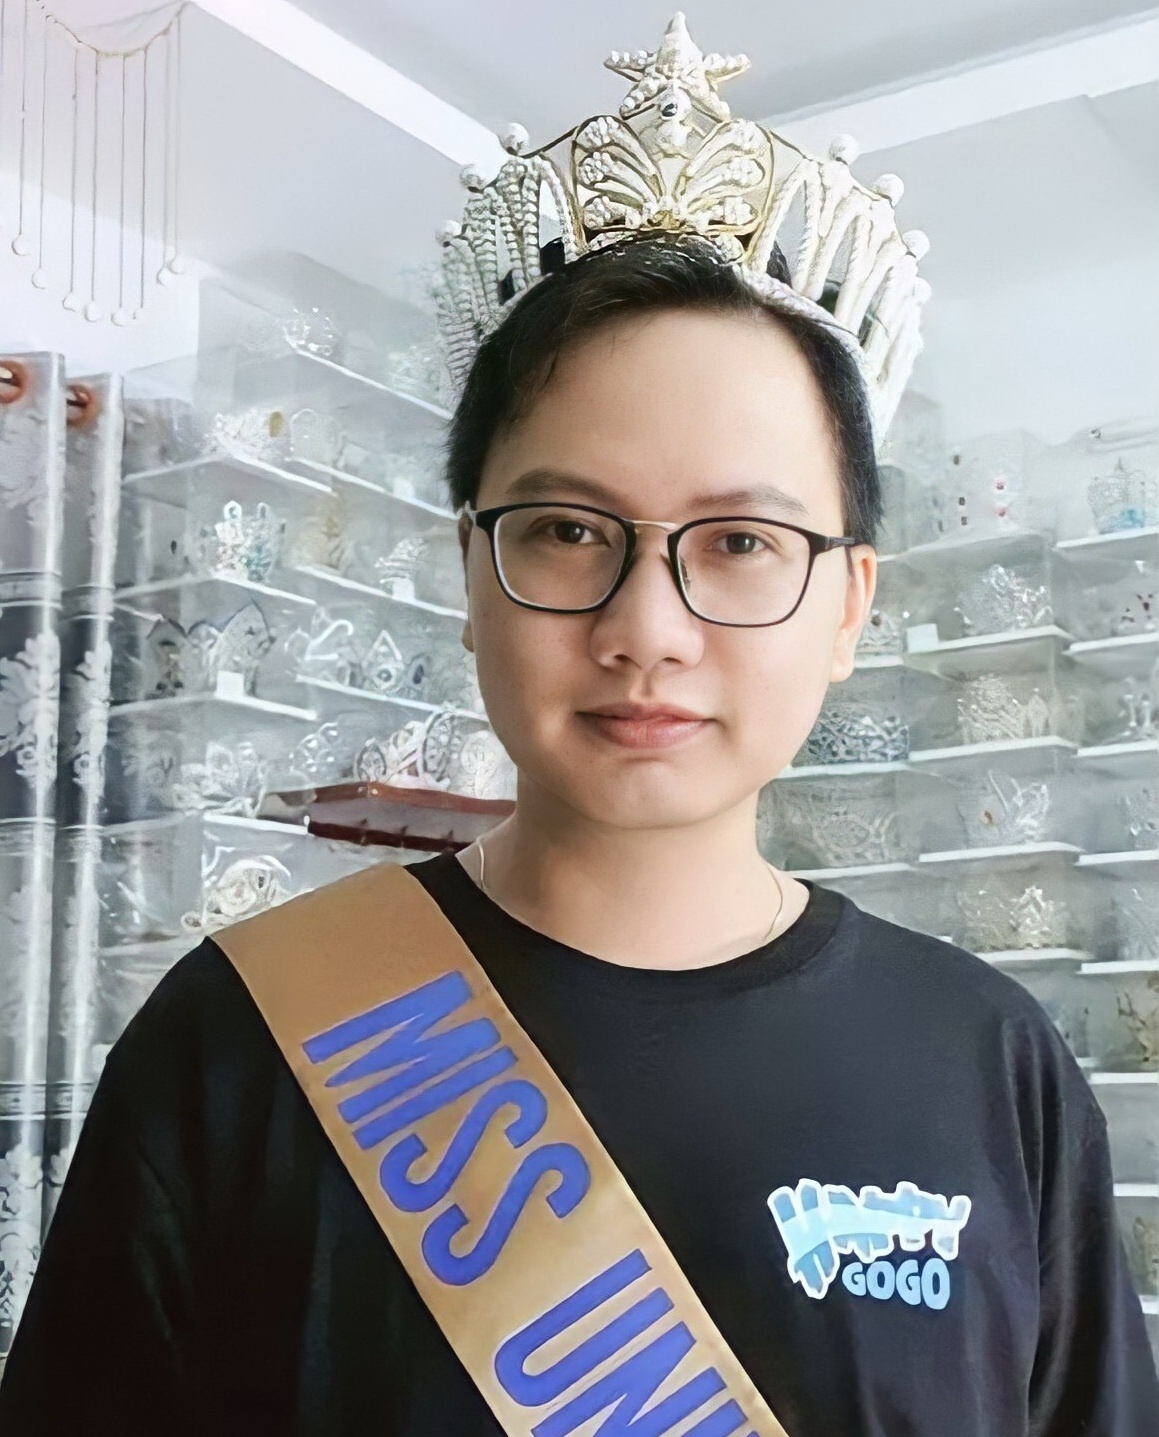 Impressive paper tiara collection of Vietnamese guy